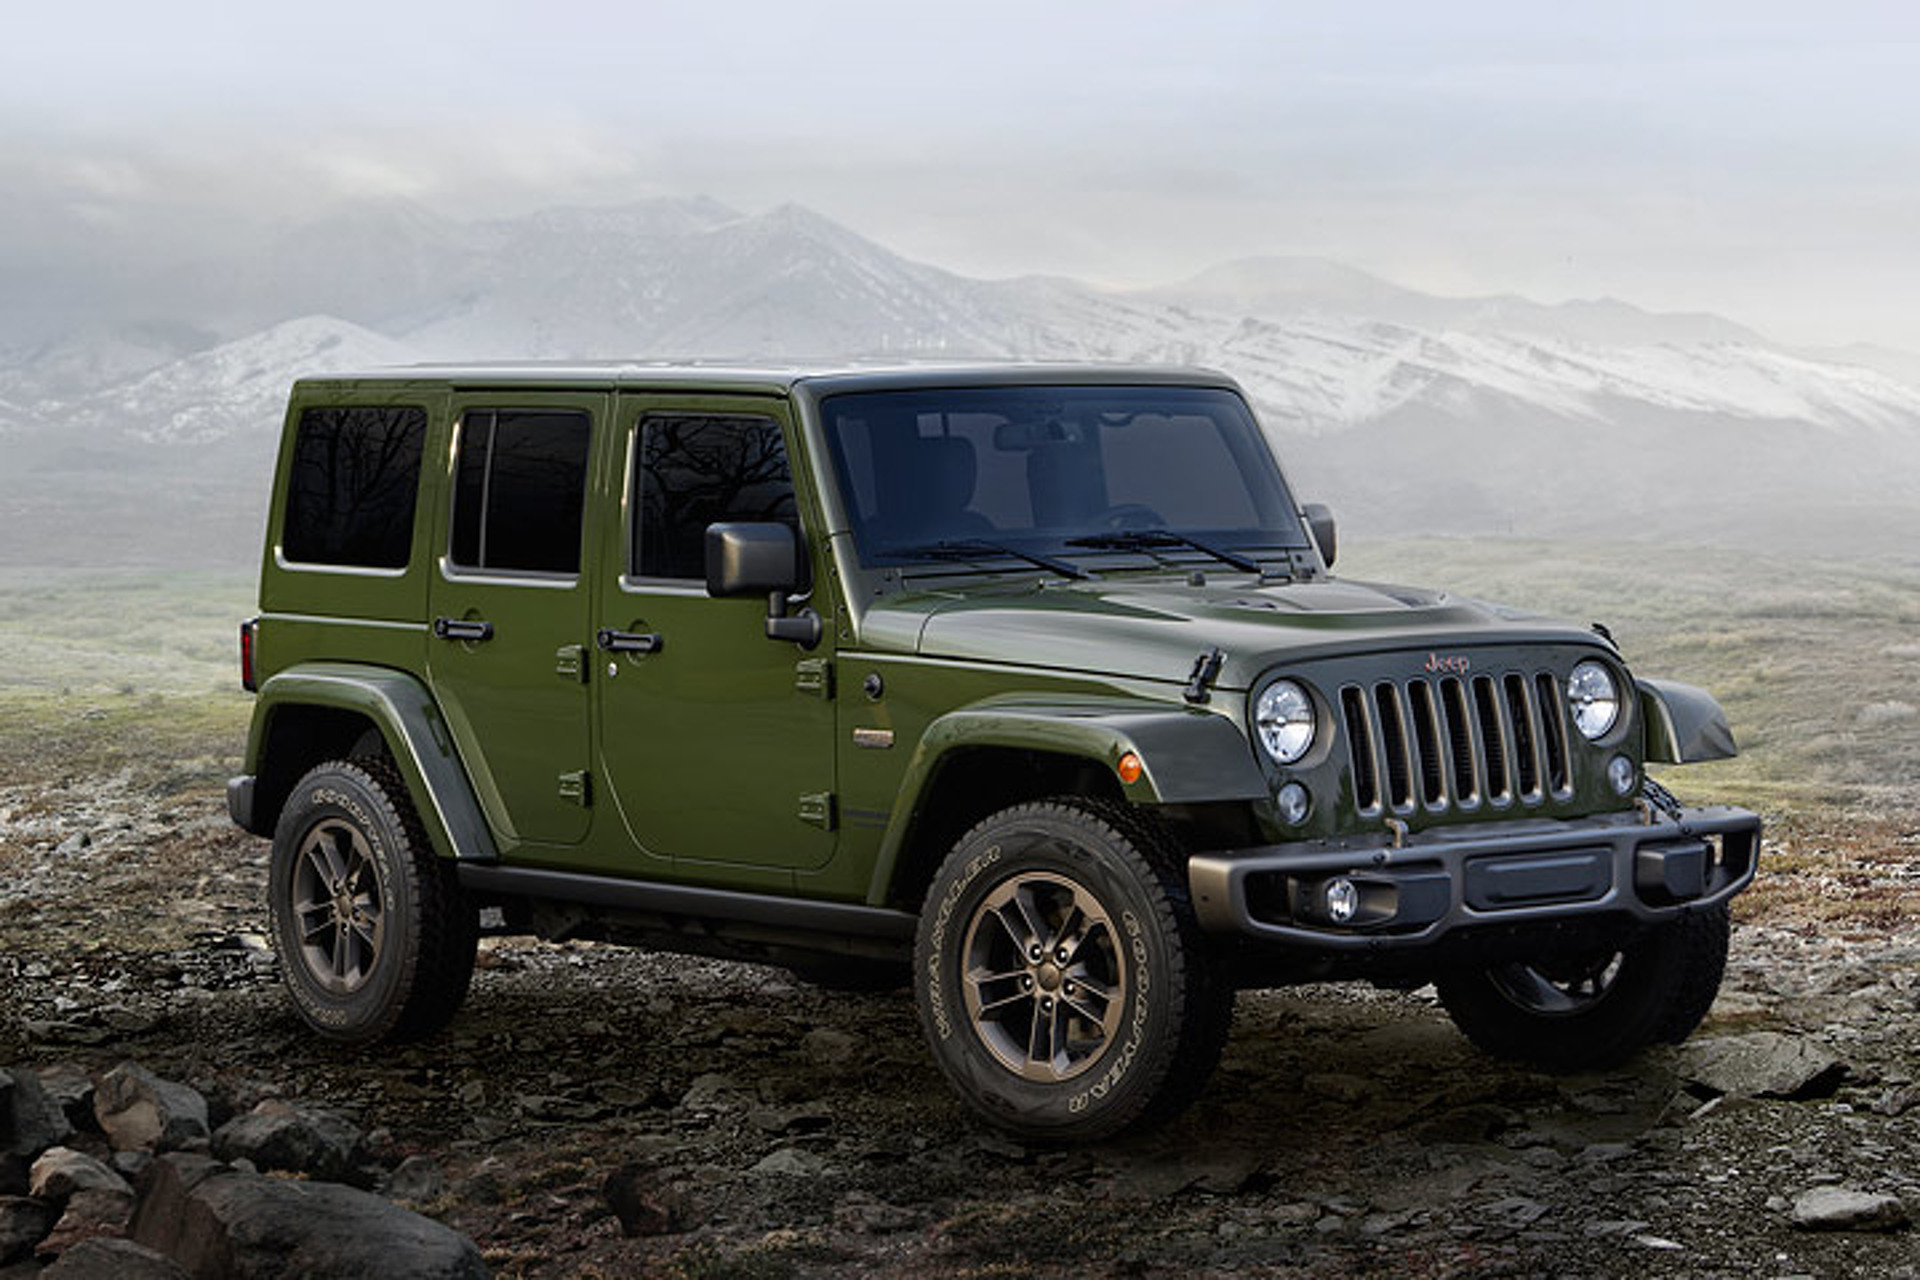 The Next Gen Jeep Wrangler Gets Diesel and Hybrid Variants